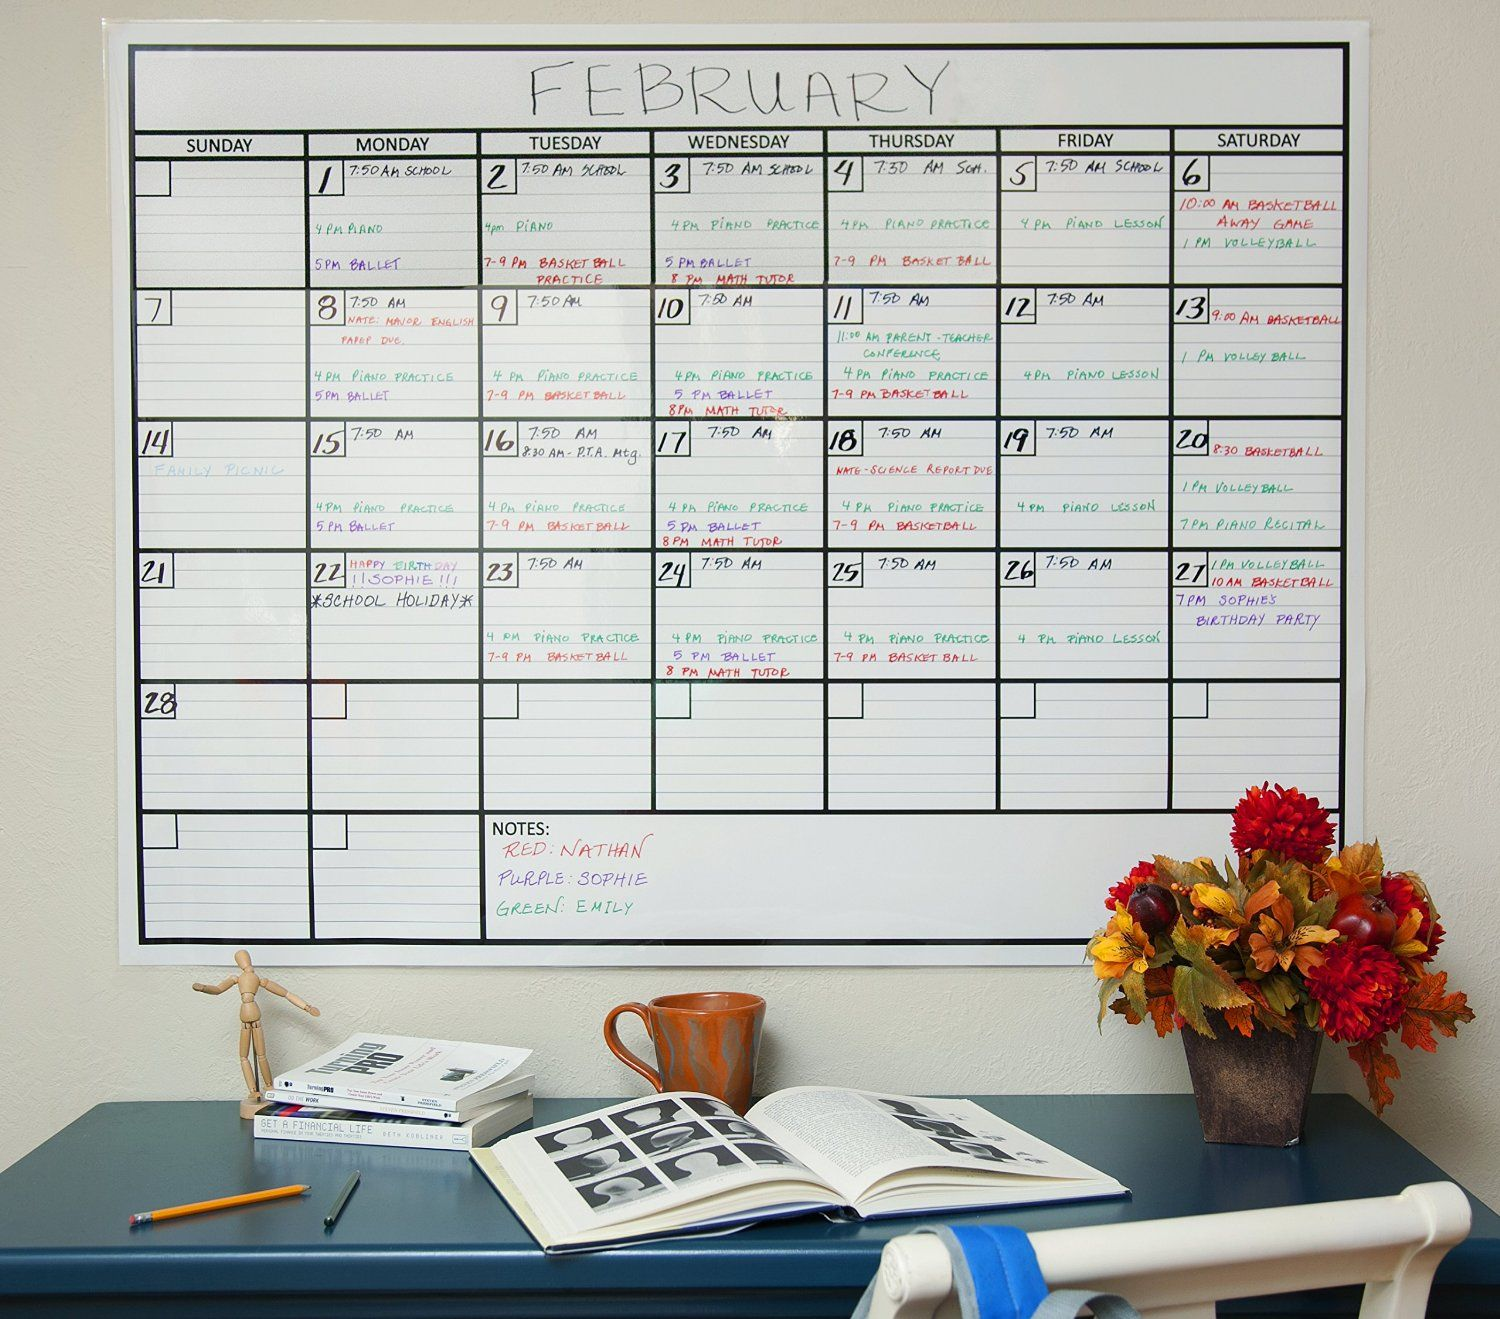 Amazon Com Laminated Jumbo Wall Calendar 36 X 48 Dry Erase Erasable One Month Planner For Offic Dry Erase Wall Calendar Large Wall Calendar Wall Calendar